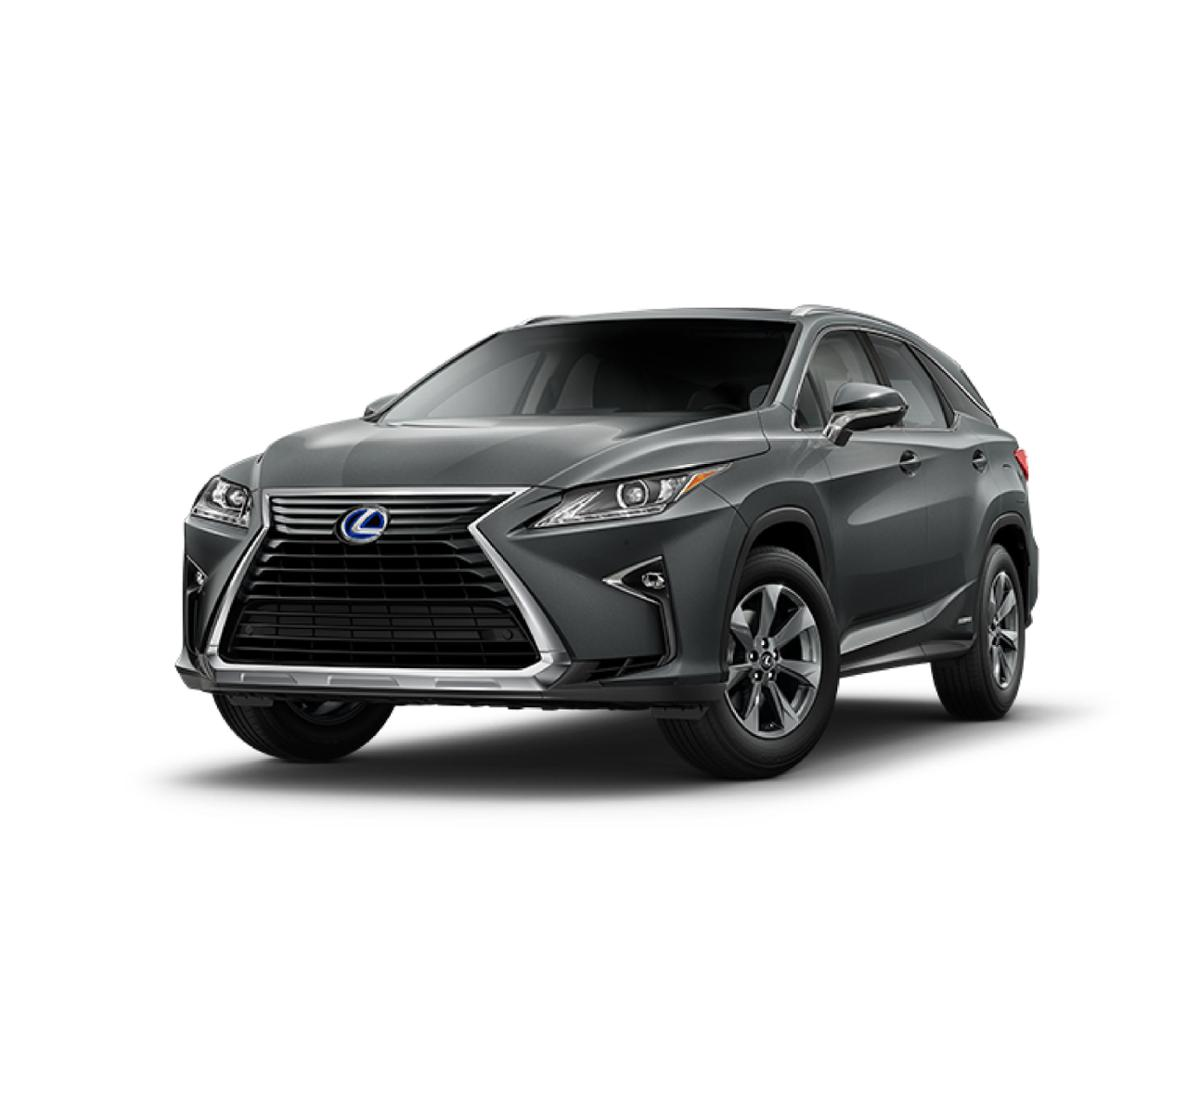 2019 Lexus RX 450hL Vehicle Photo in Santa Monica, CA 90404